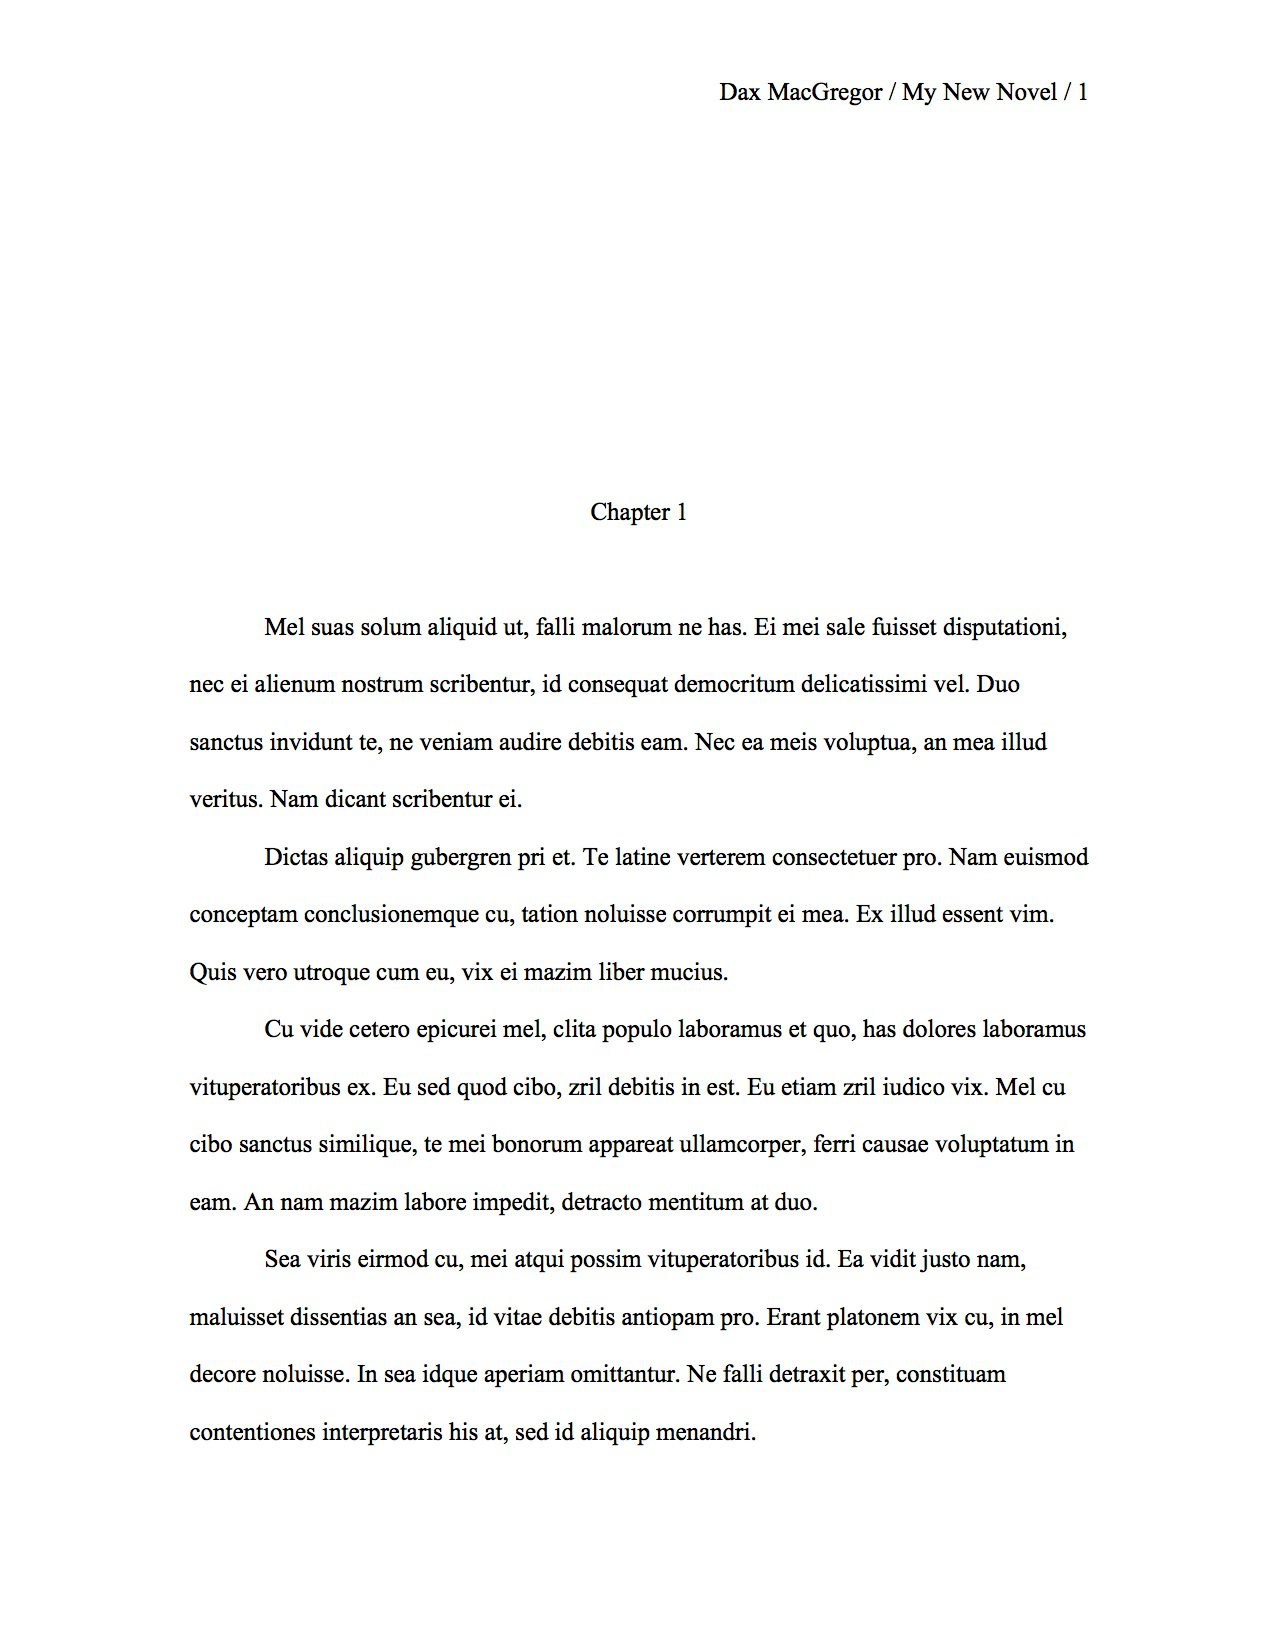 Proper manuscript format for a novel first manuscript for Cover letter for revised manuscript sample